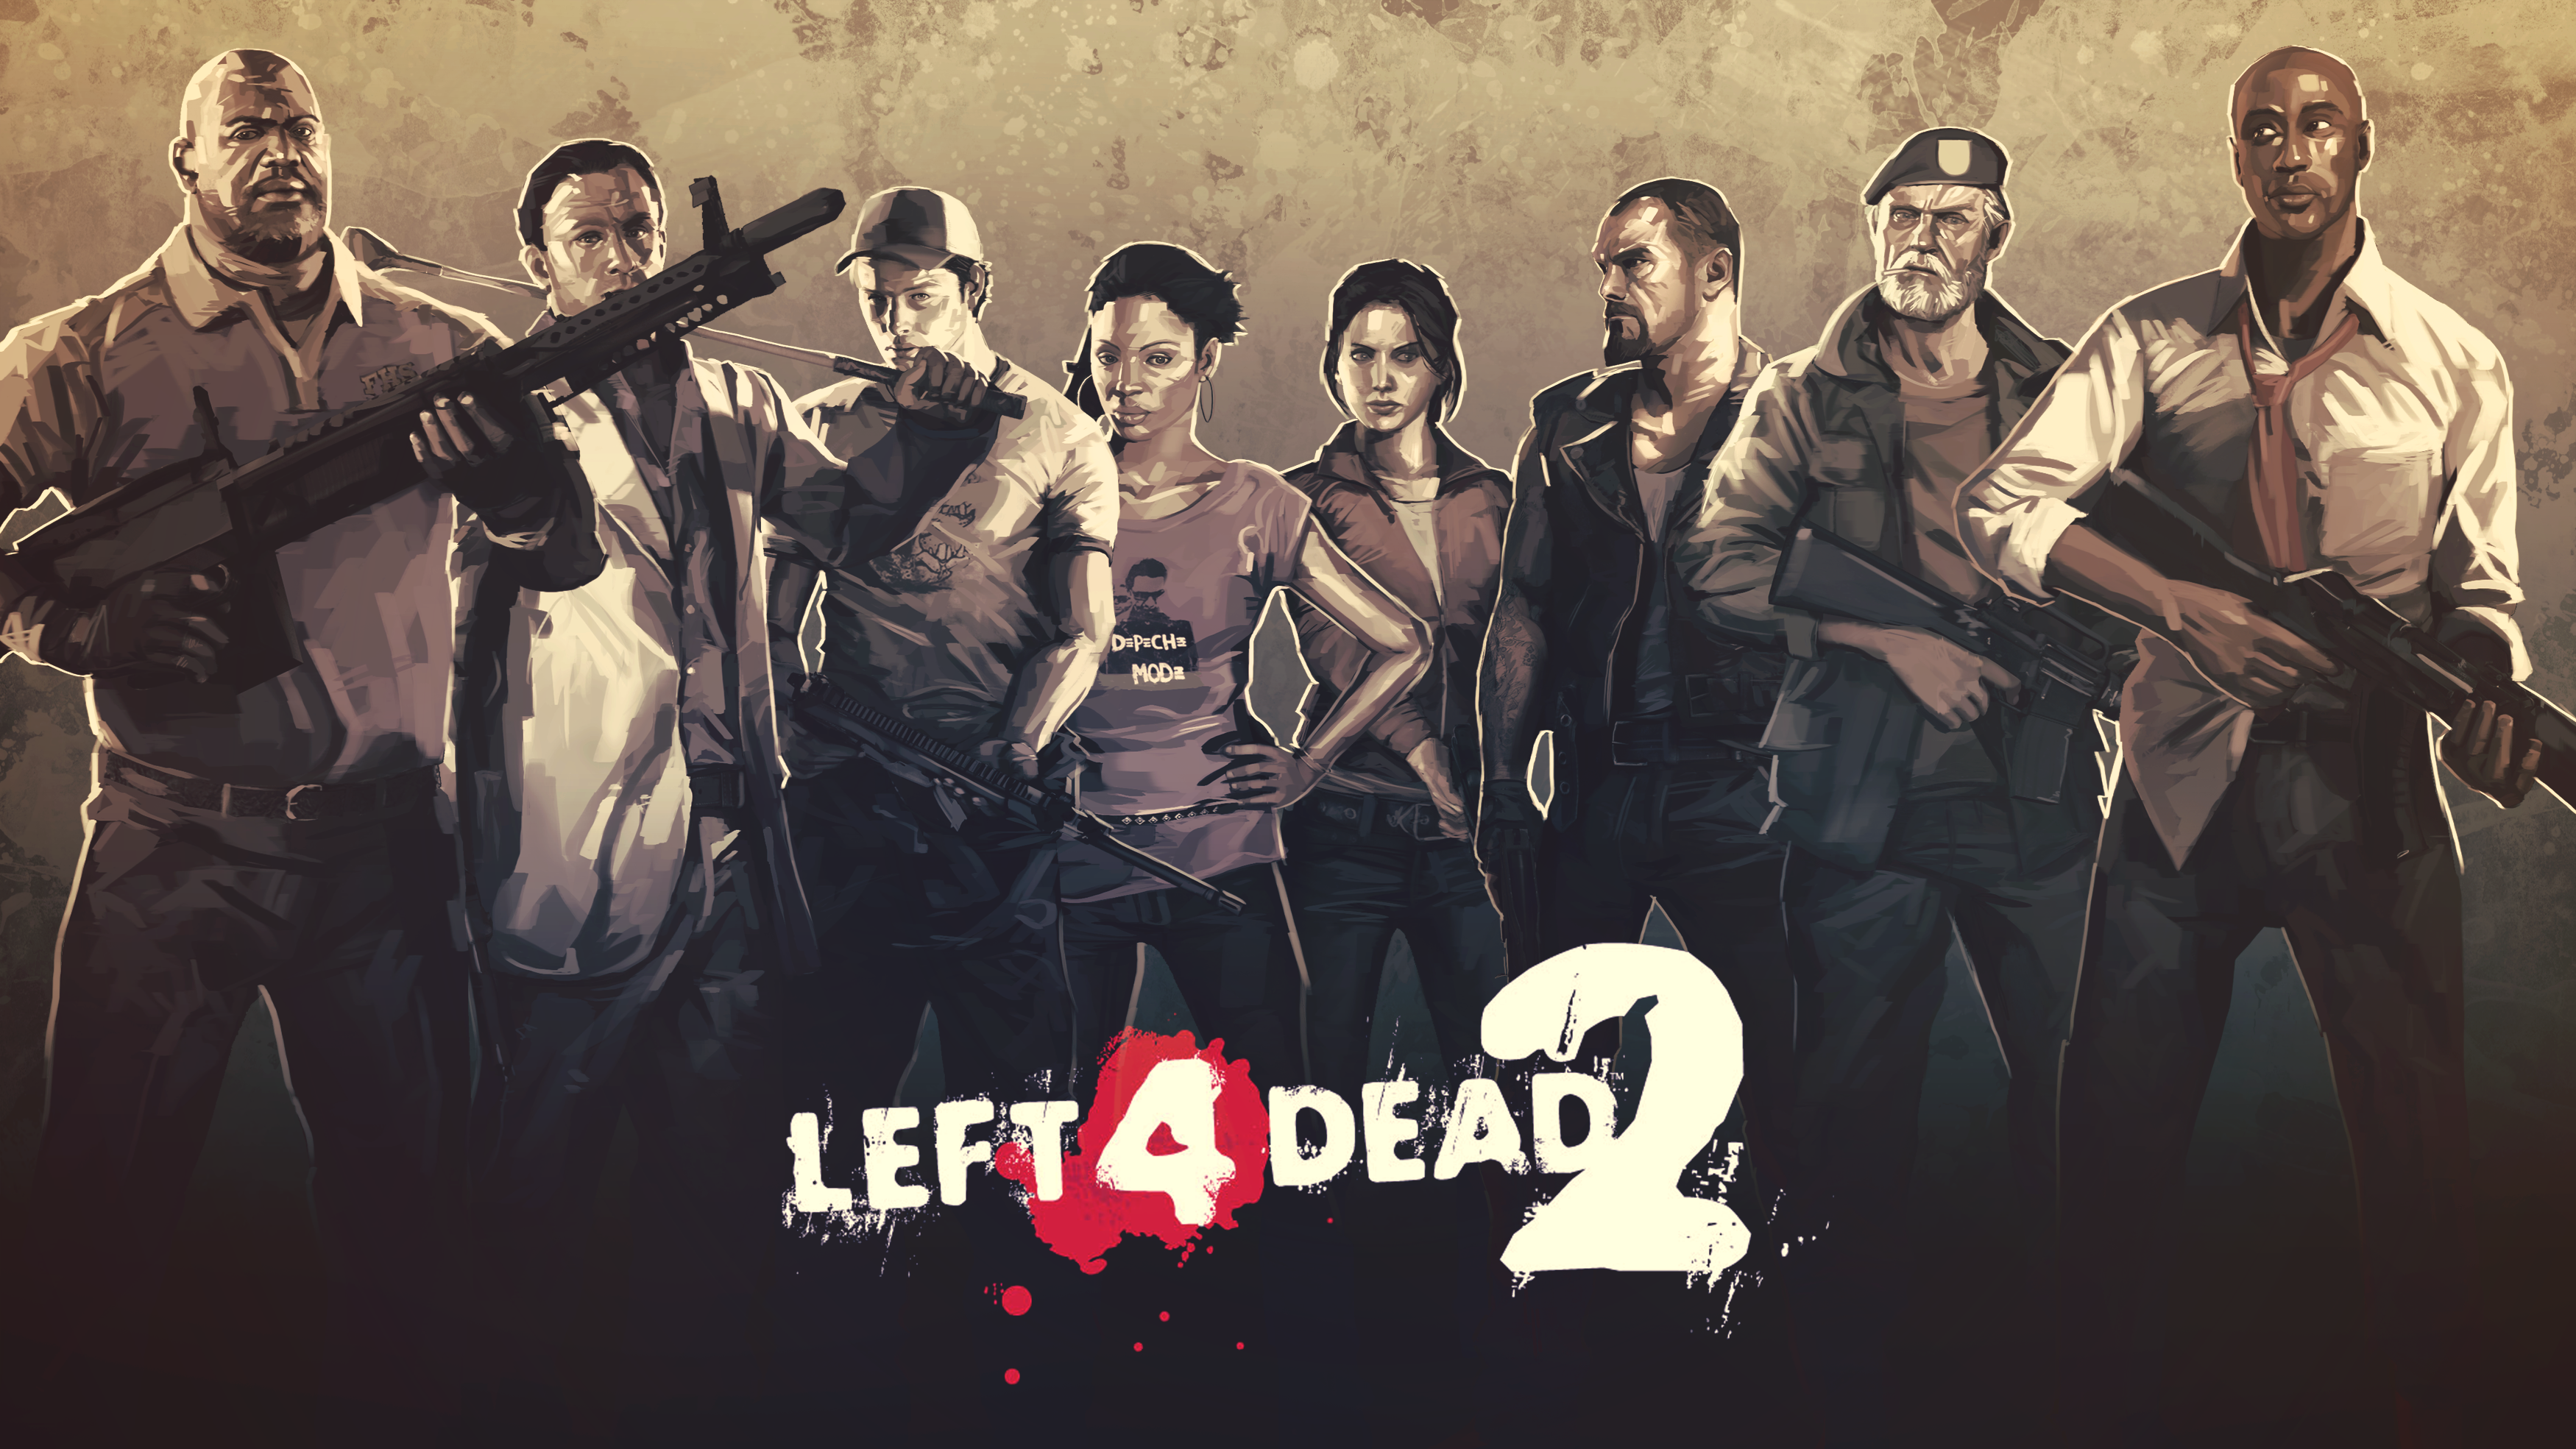 Left 4 Dead 2 For Xbox One Through BC